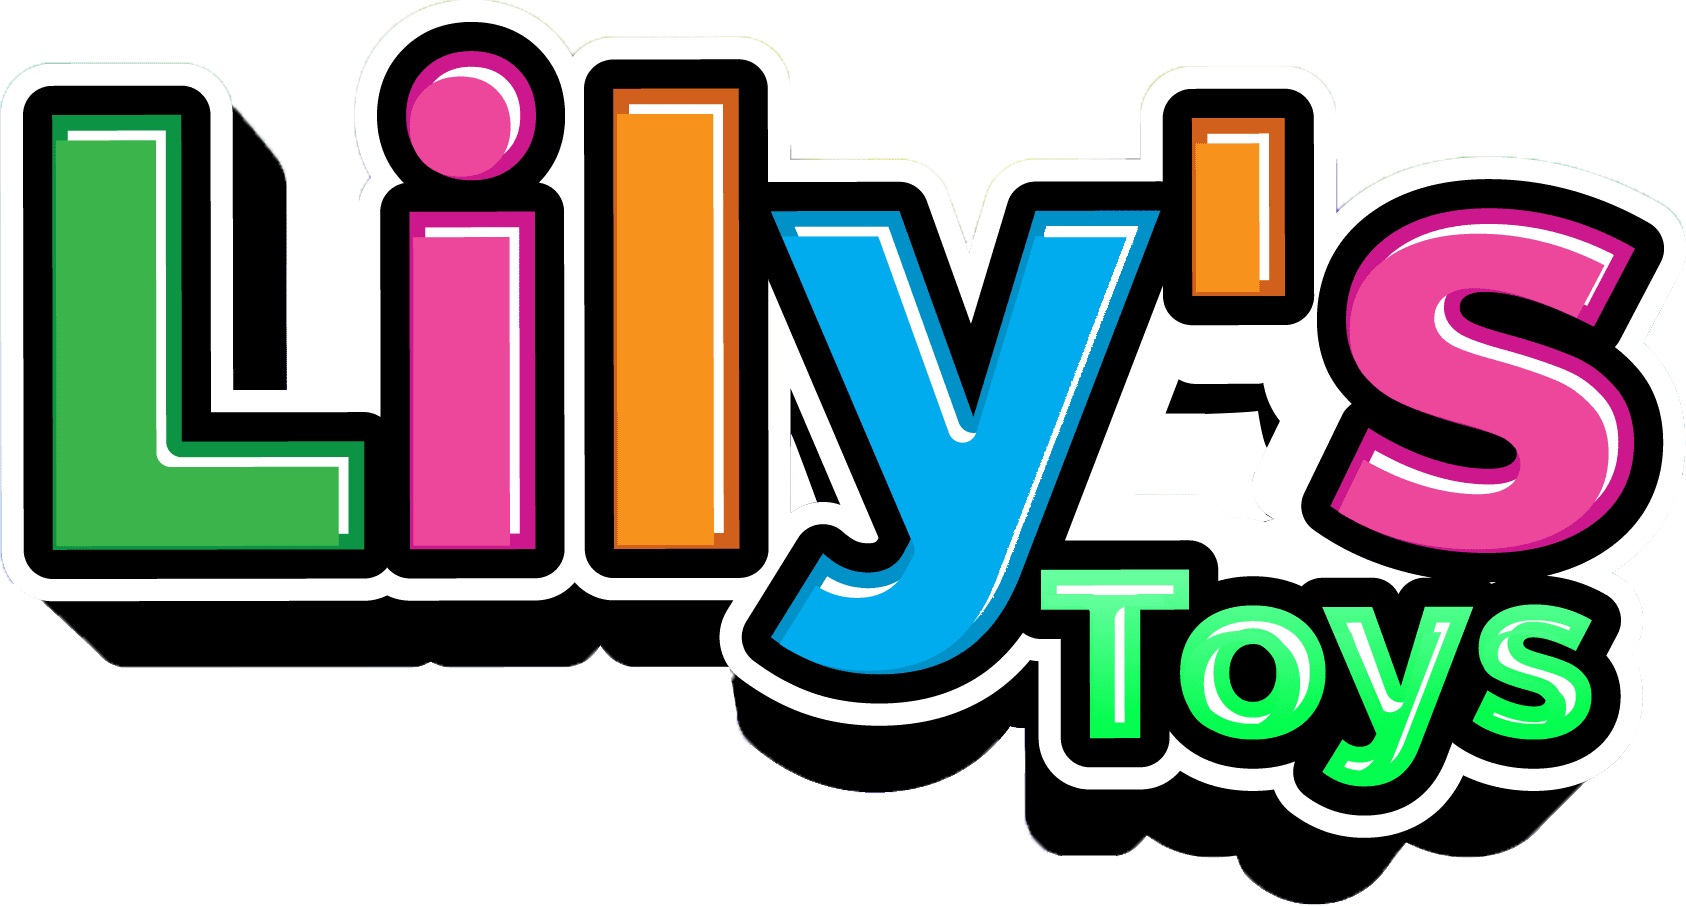 Lily's Toys